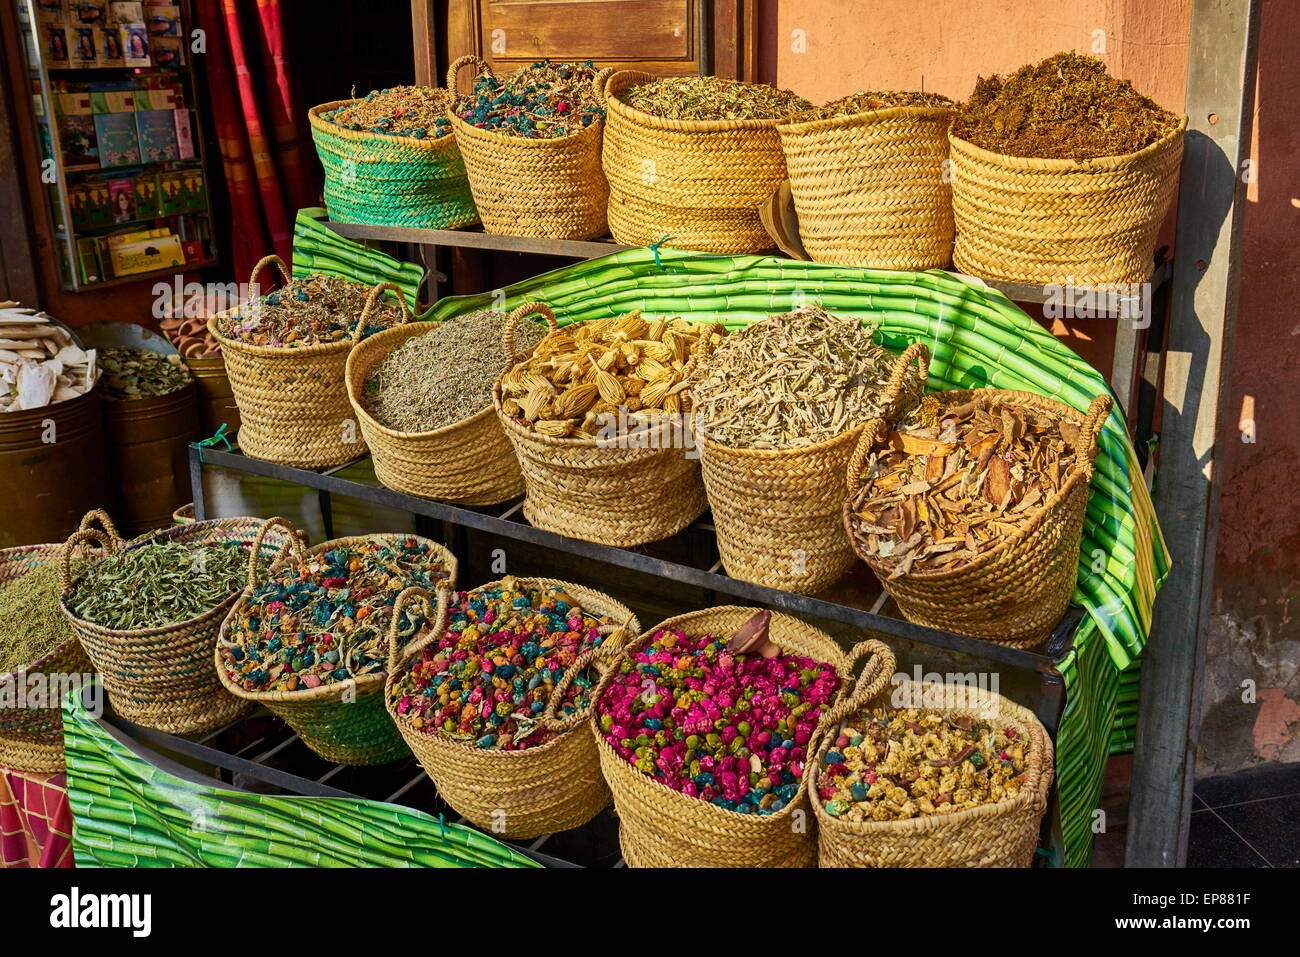 Baskets of dried flowers, rose petals, buds and herbs in the souk. Morocco - Stock Image